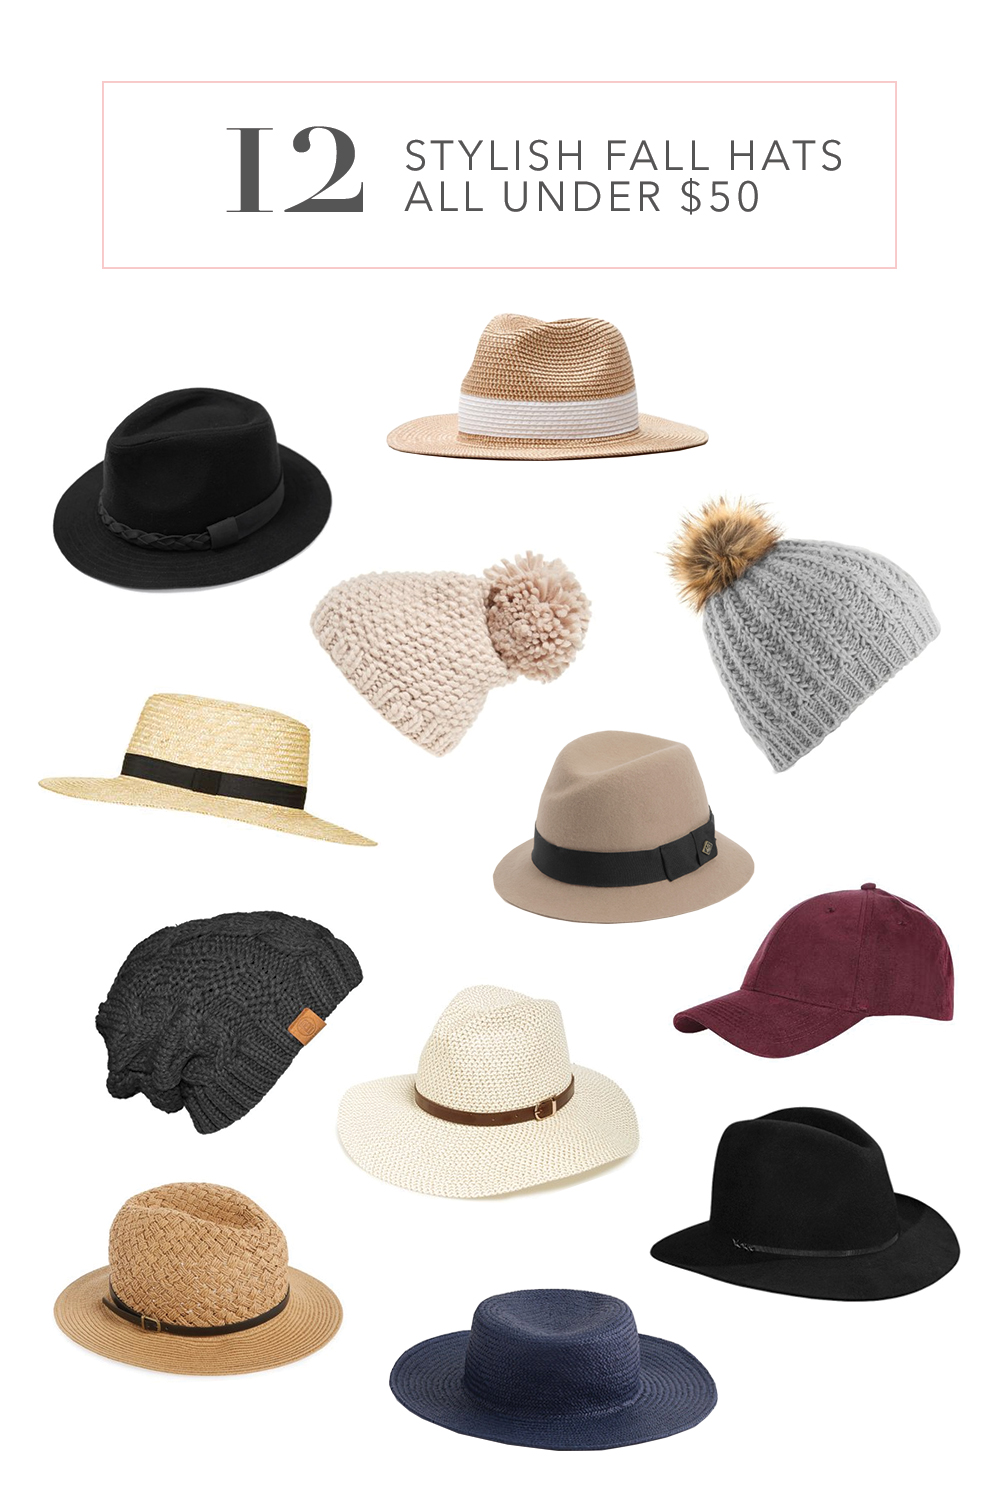 Affordable and Styylish Fall Hats | Direst Link to shop all styles